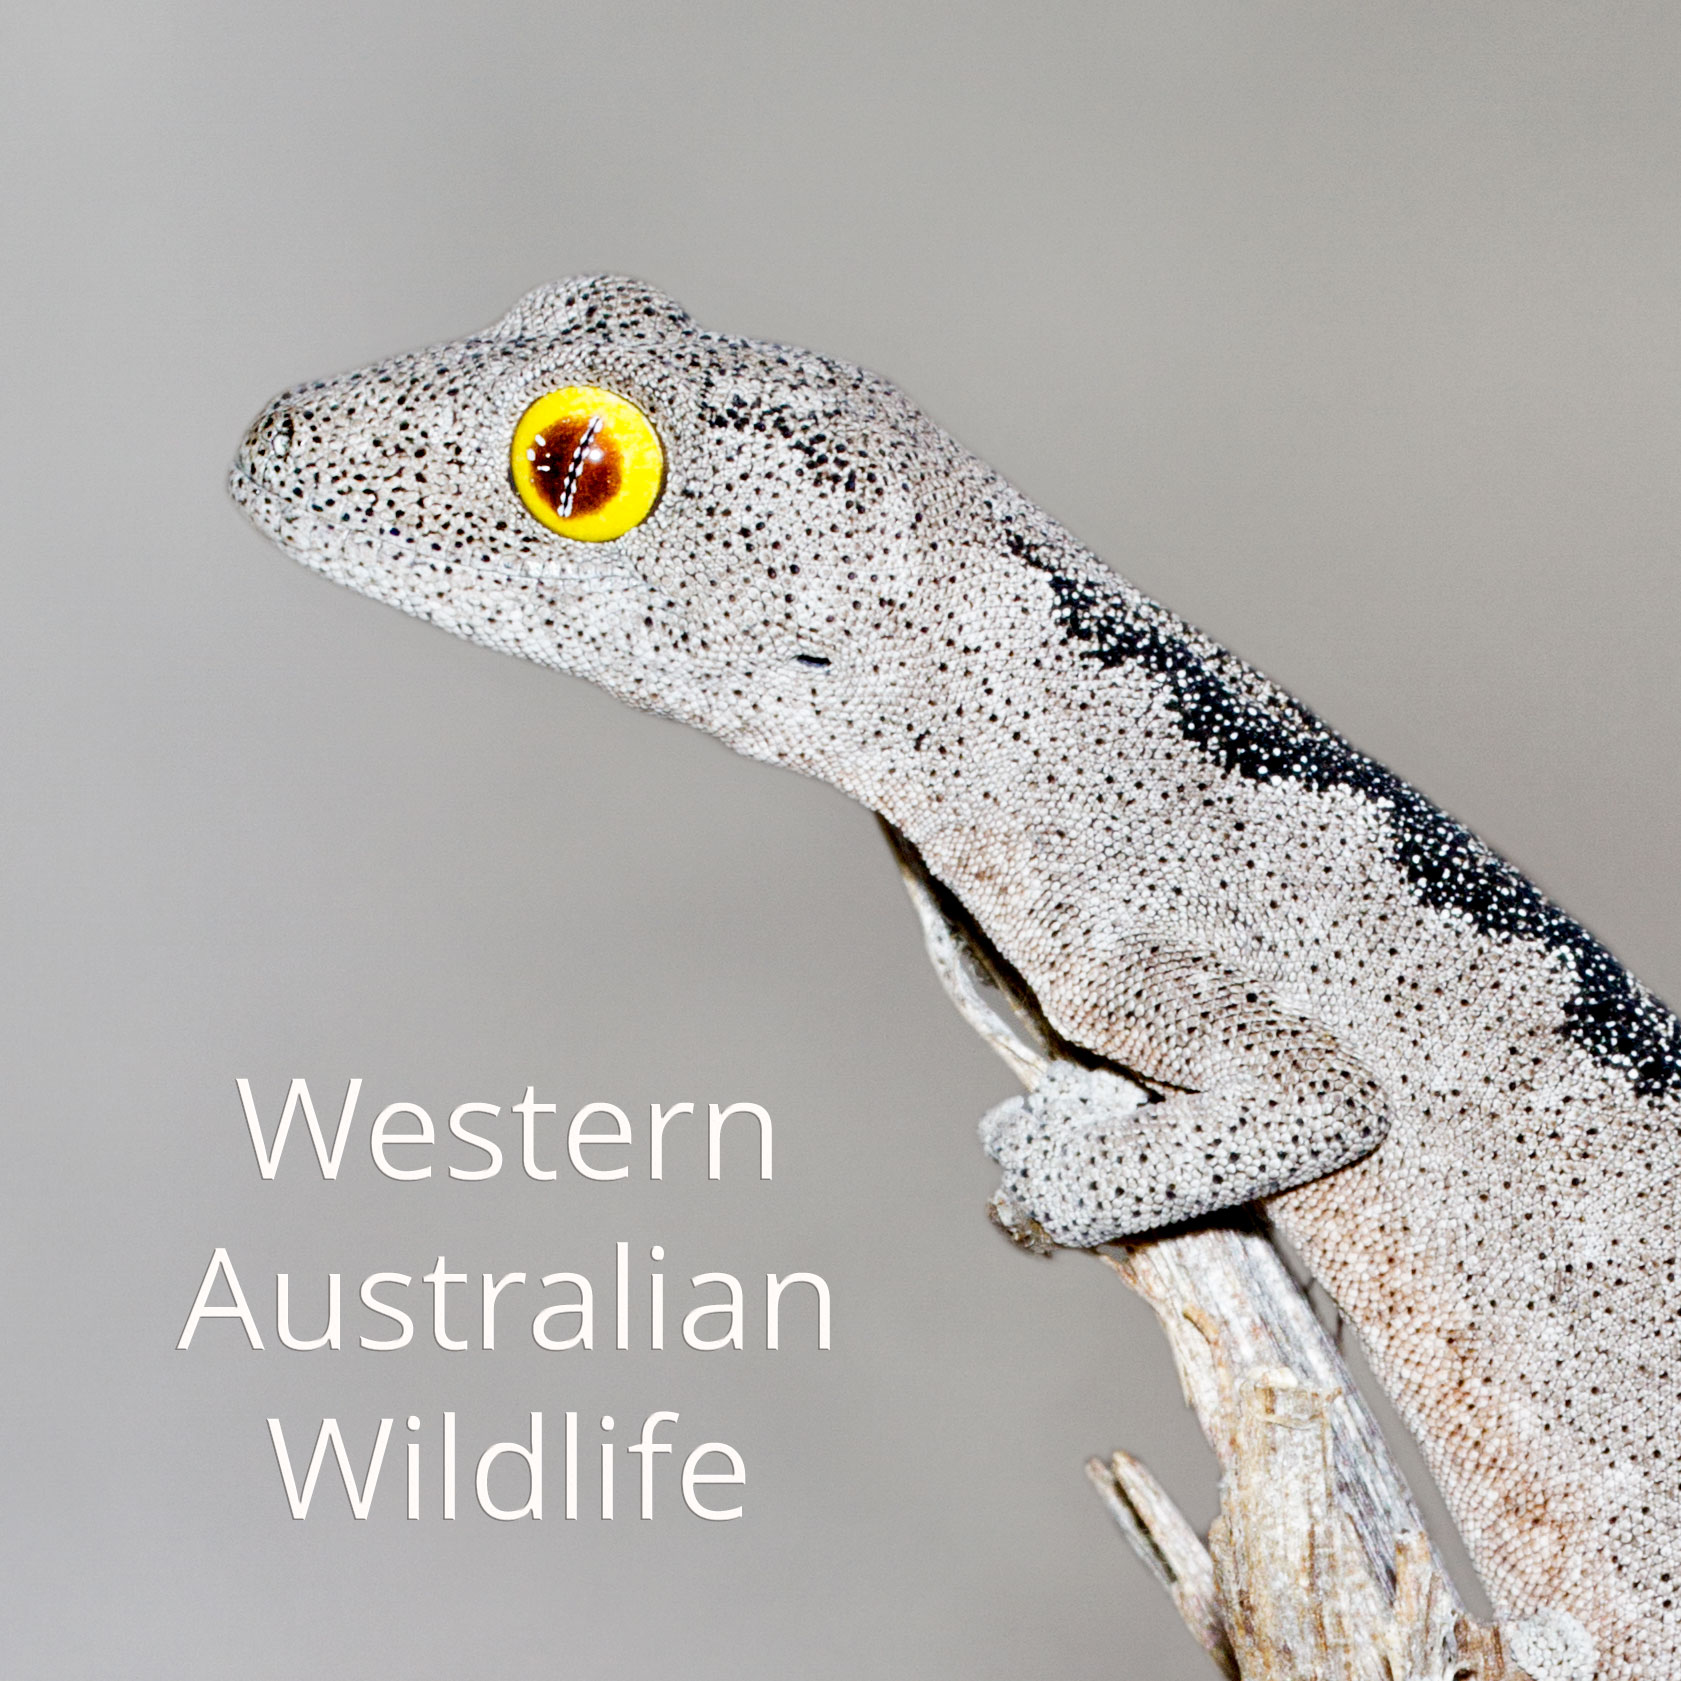 WA wildlife gallery (image: south-west spiny-tailed gecko, Strophurus spinigerus)